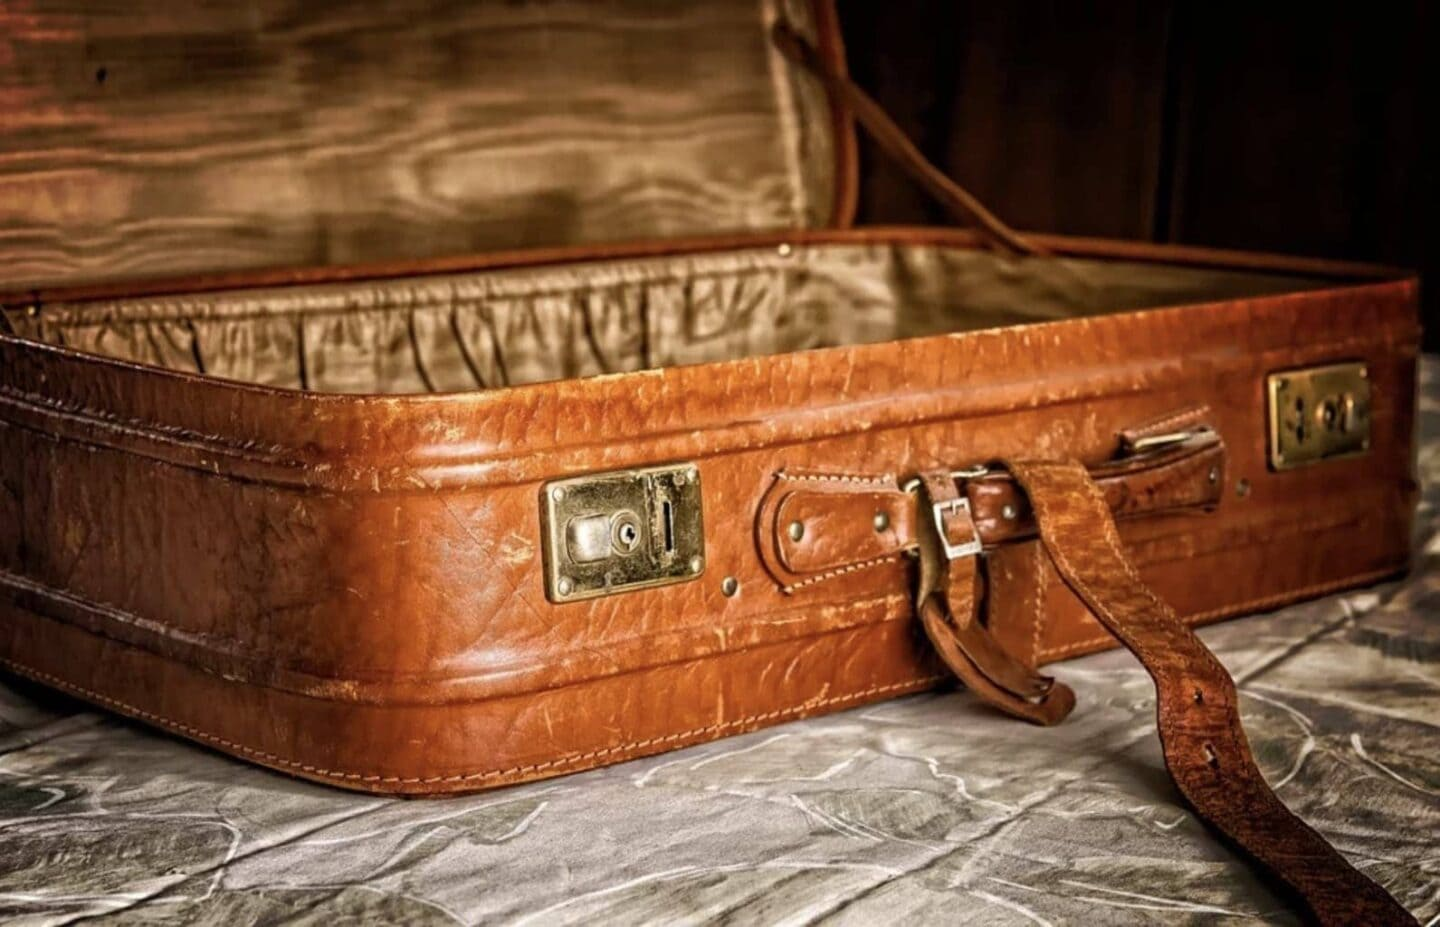 4 Common Travel Mistakes and How to Avoid Them